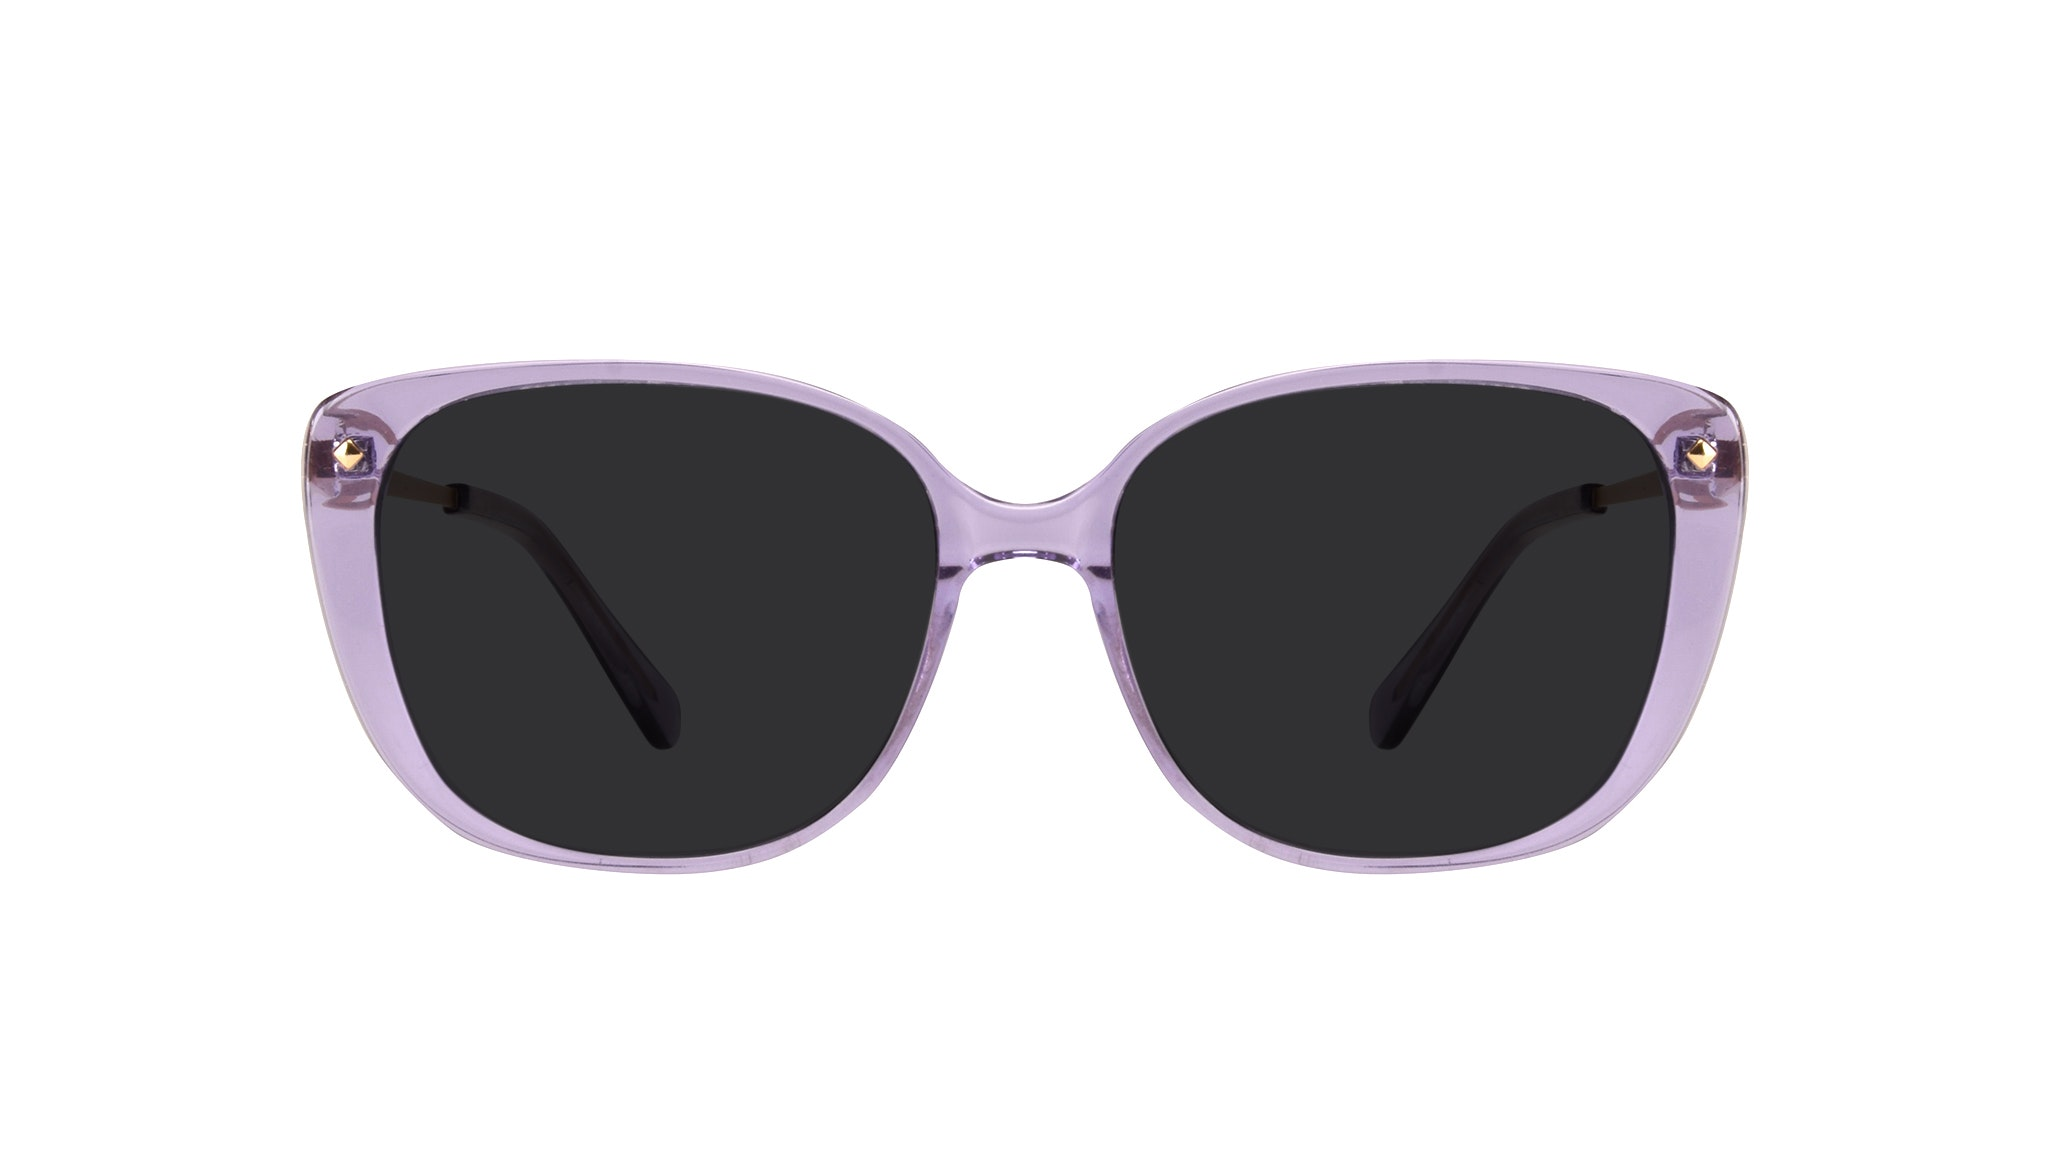 Affordable Fashion Glasses Square Sunglasses Women Japonisme Lavender Front